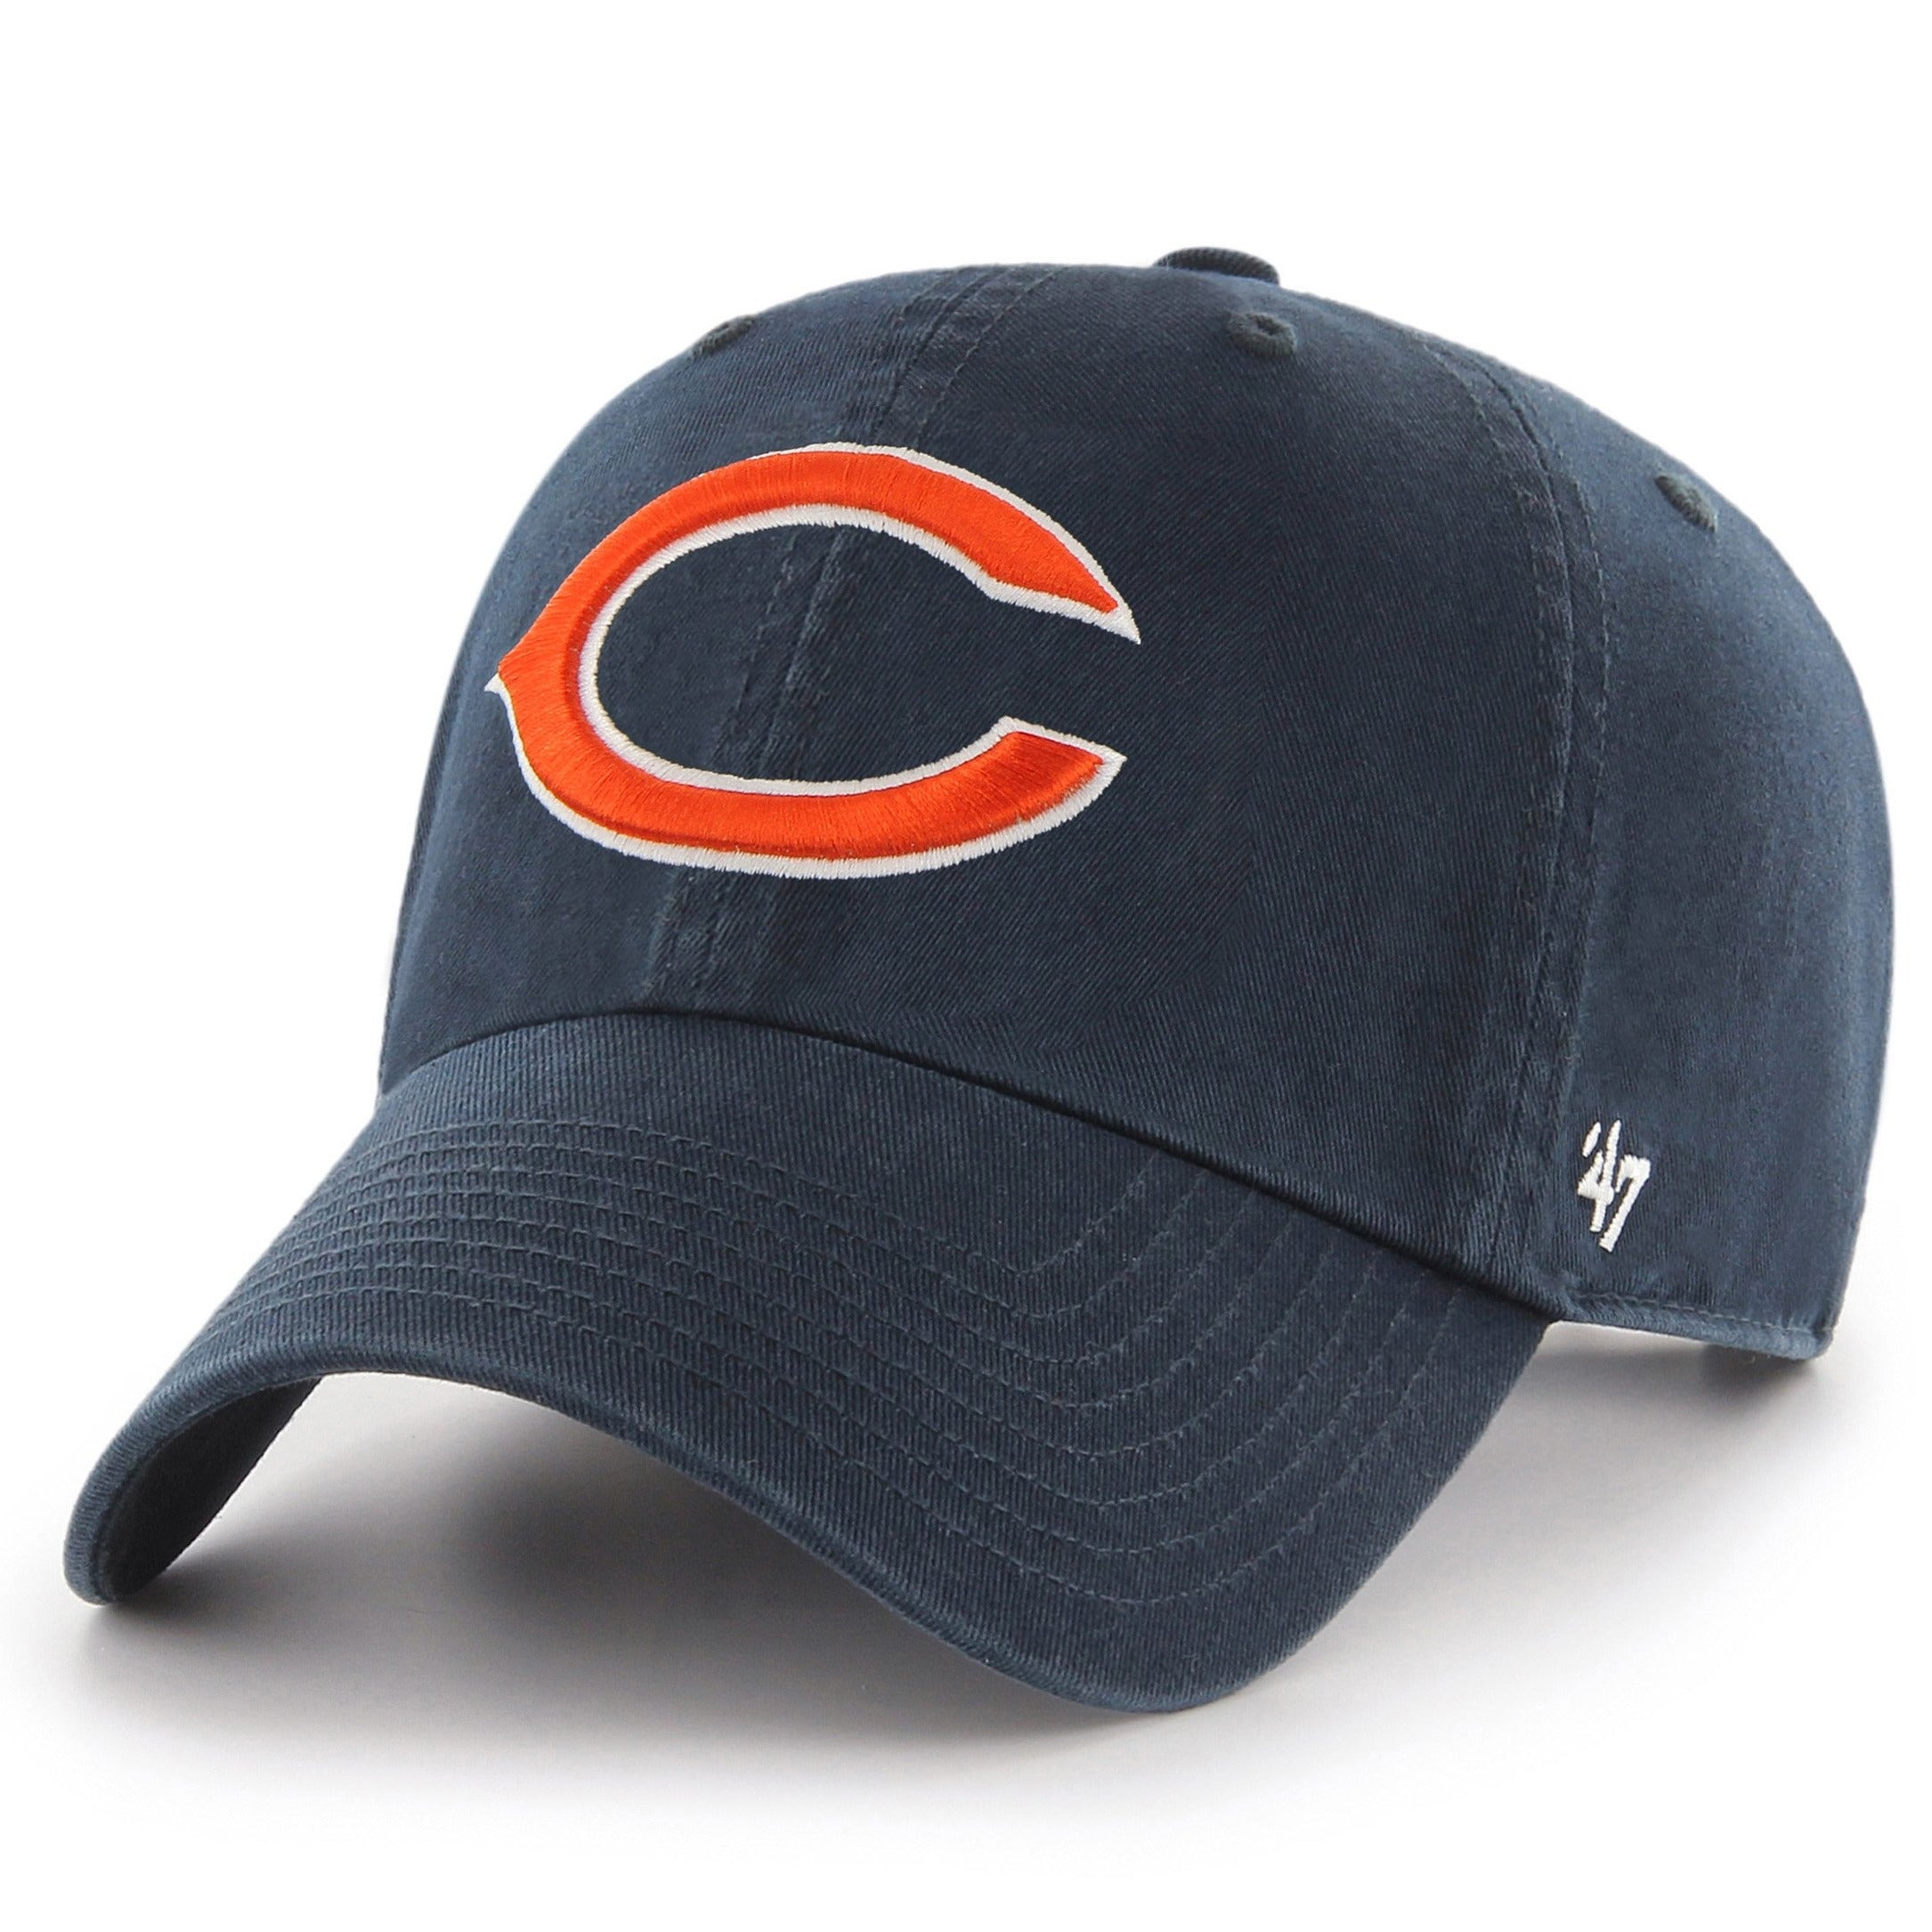 Chicago Bears (NFL) - Unstructured Baseball Cap